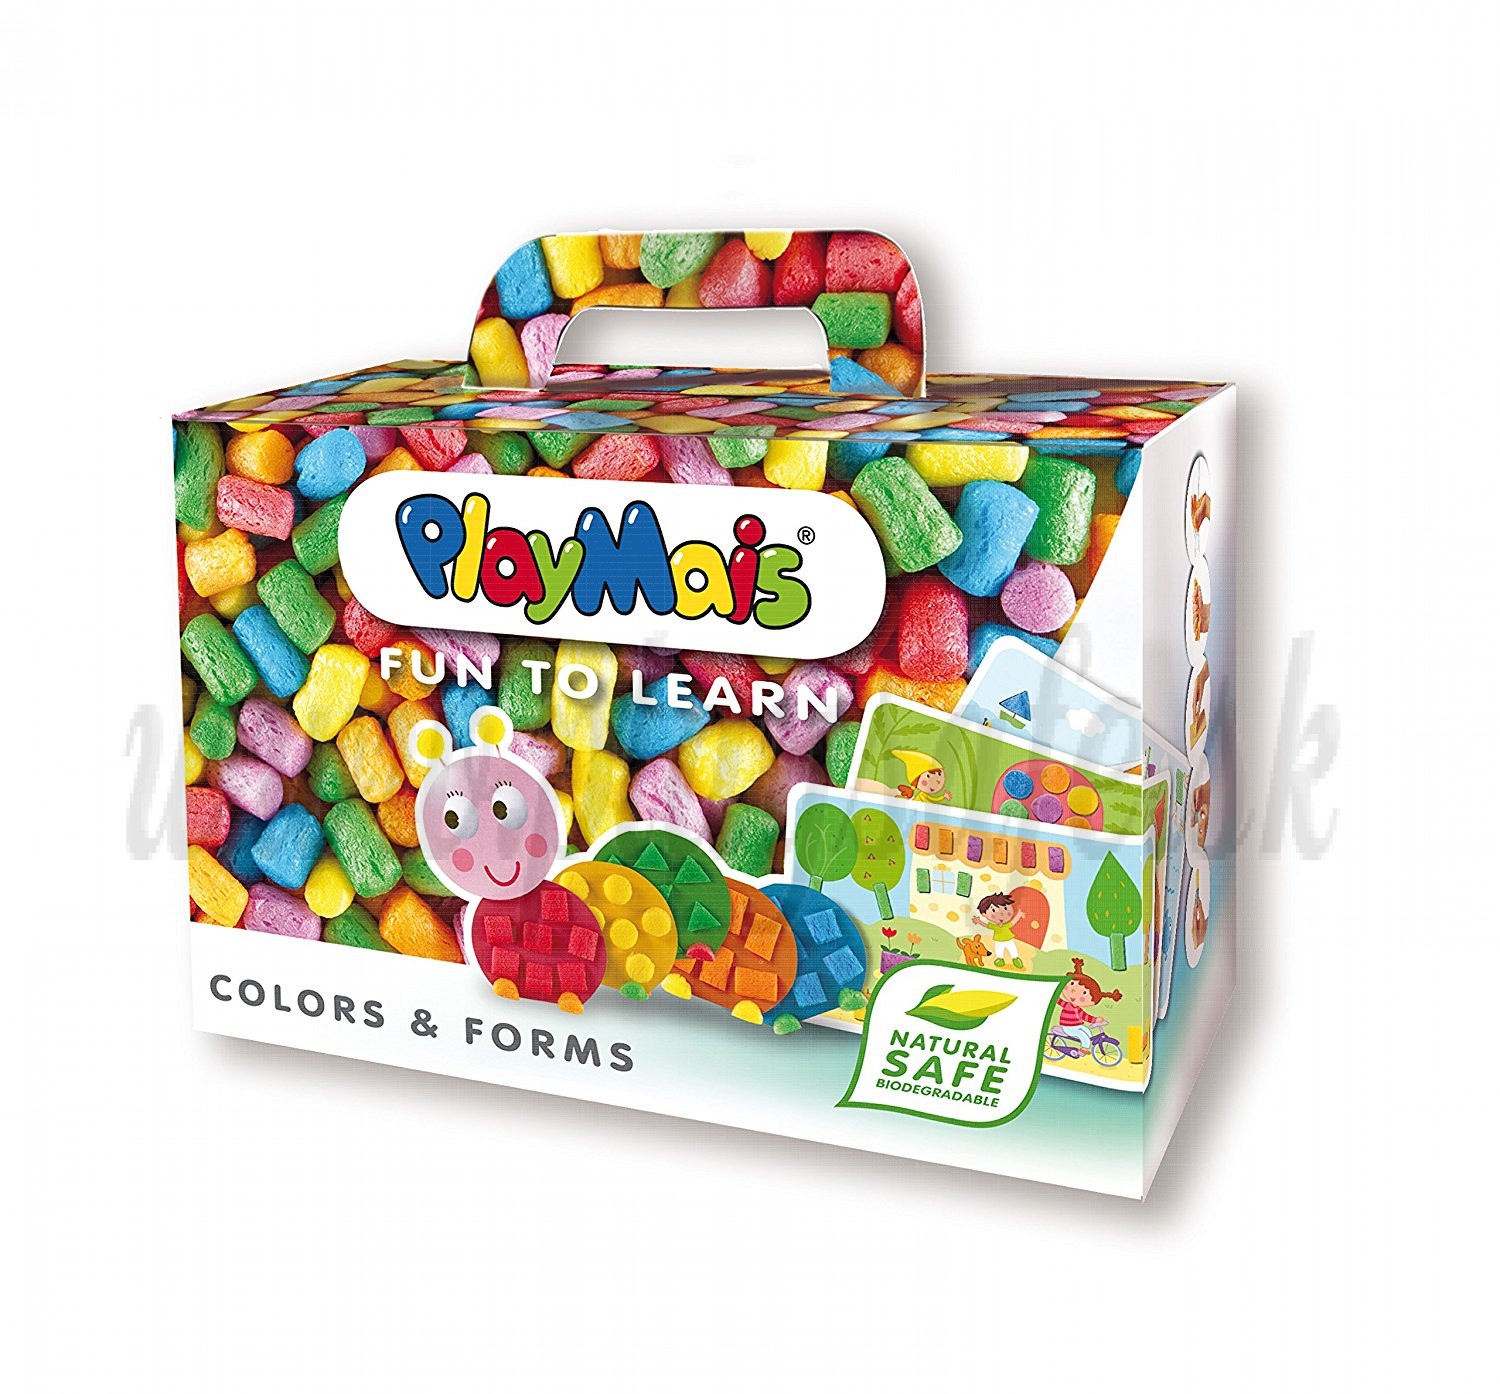 Playmais FUN TO LEARN Colors & Forms Playset, 550 pieces